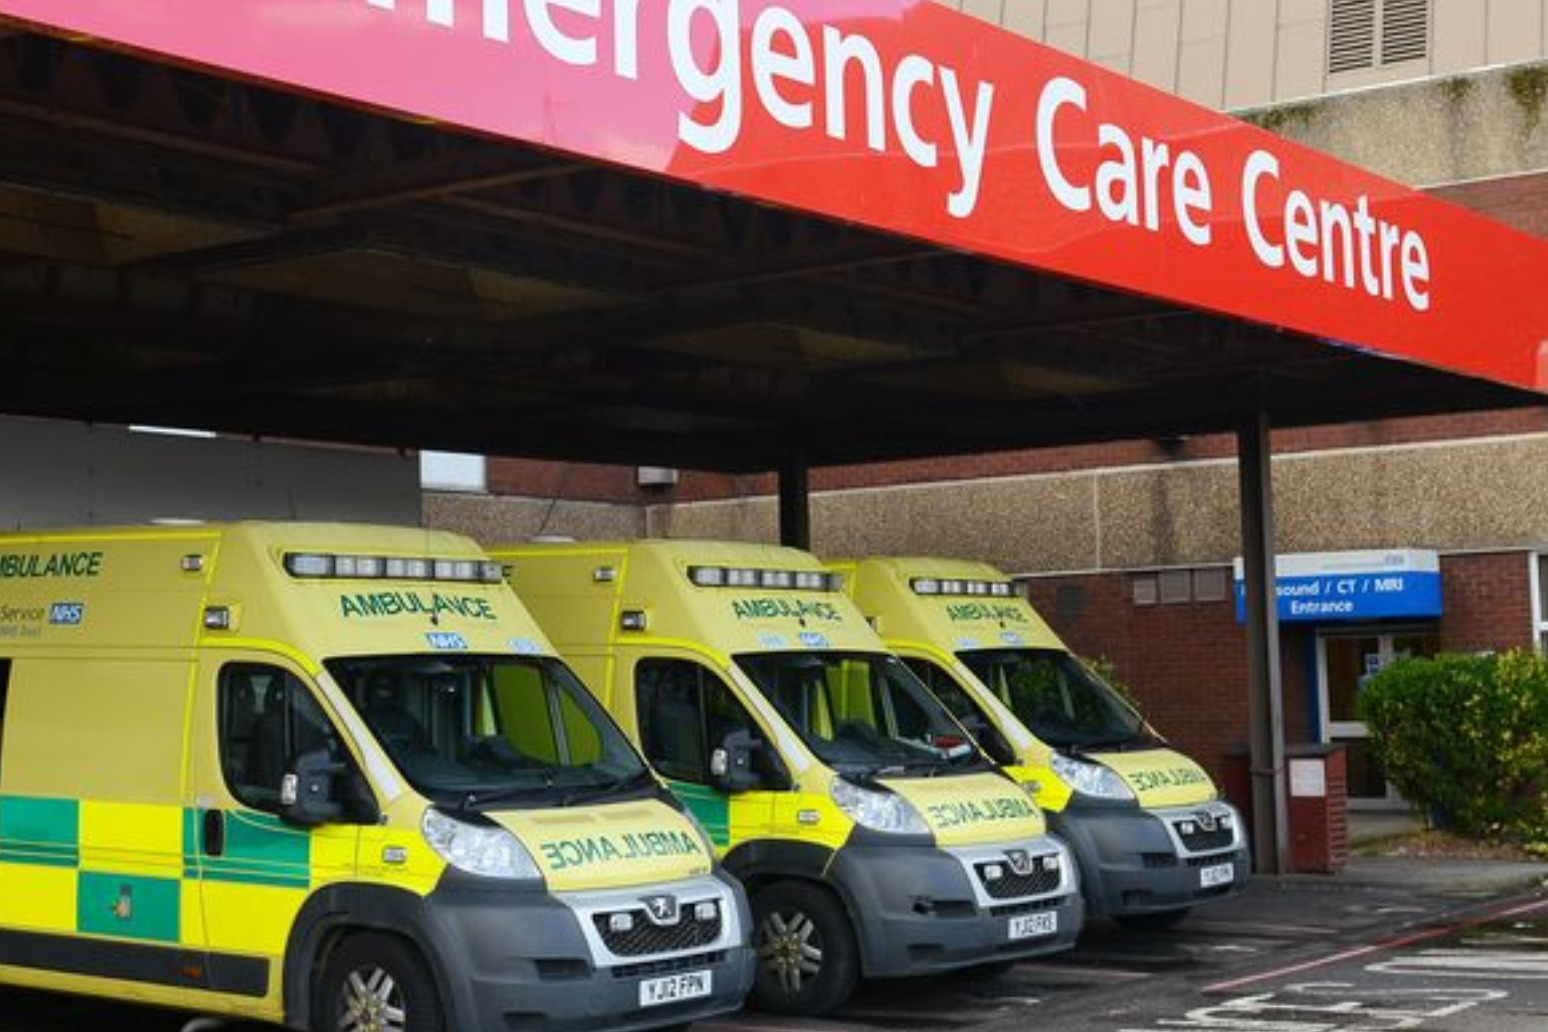 Three-year-old boy dies at a swimming pool in West Yorkshire